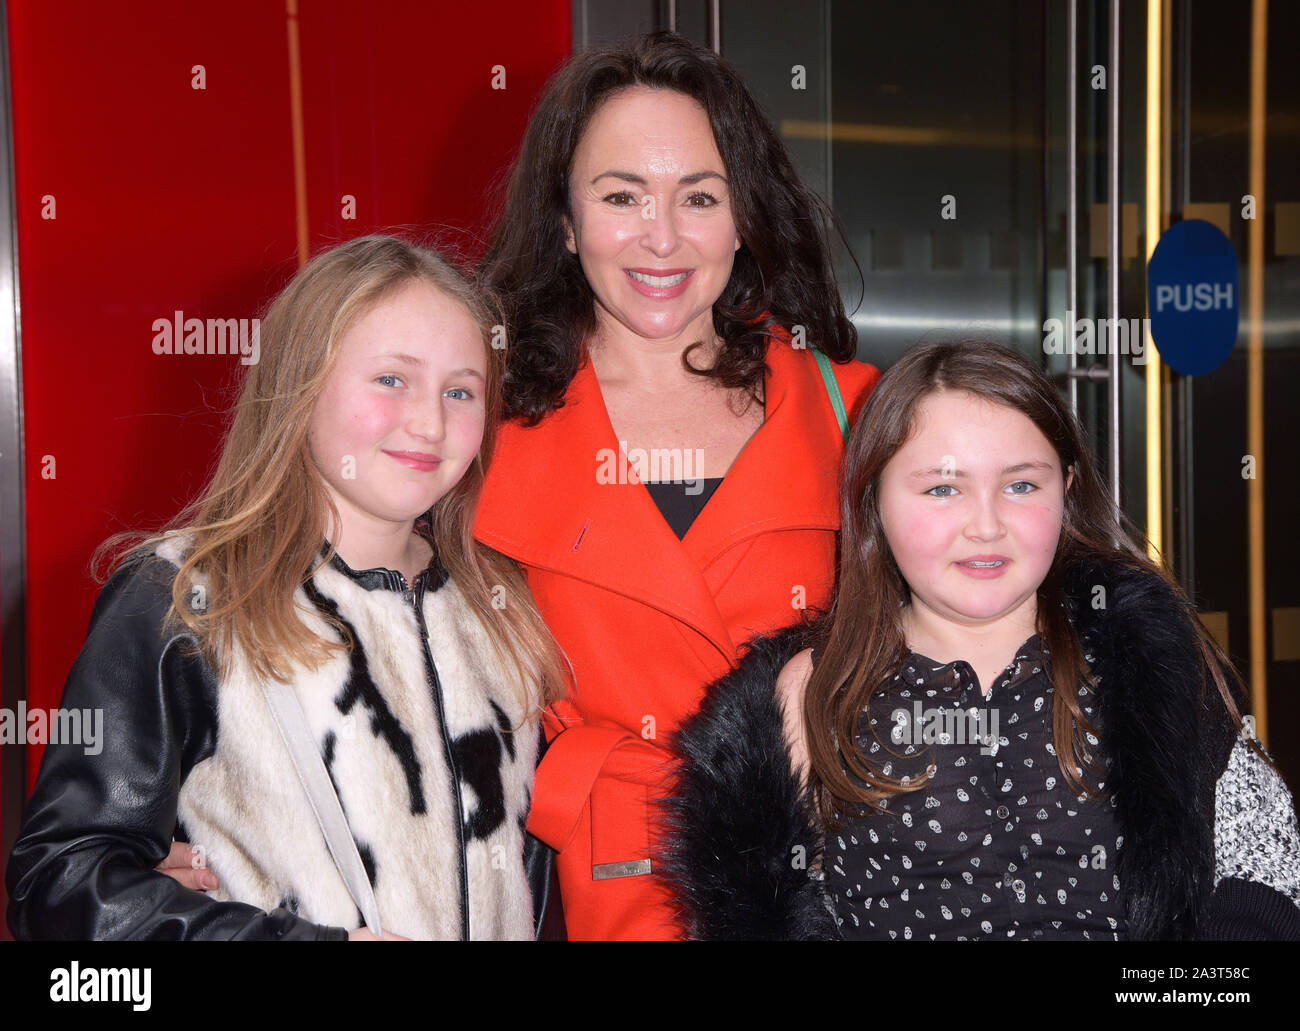 Photo Must Be Credited C Alpha Press 079796 06 12 2015 Samantha Spiro And Daughters At Matthew Bourne S Sleeping Beauty Gala Performance At Sadler S Wells Theatre In London Stock Photo Alamy